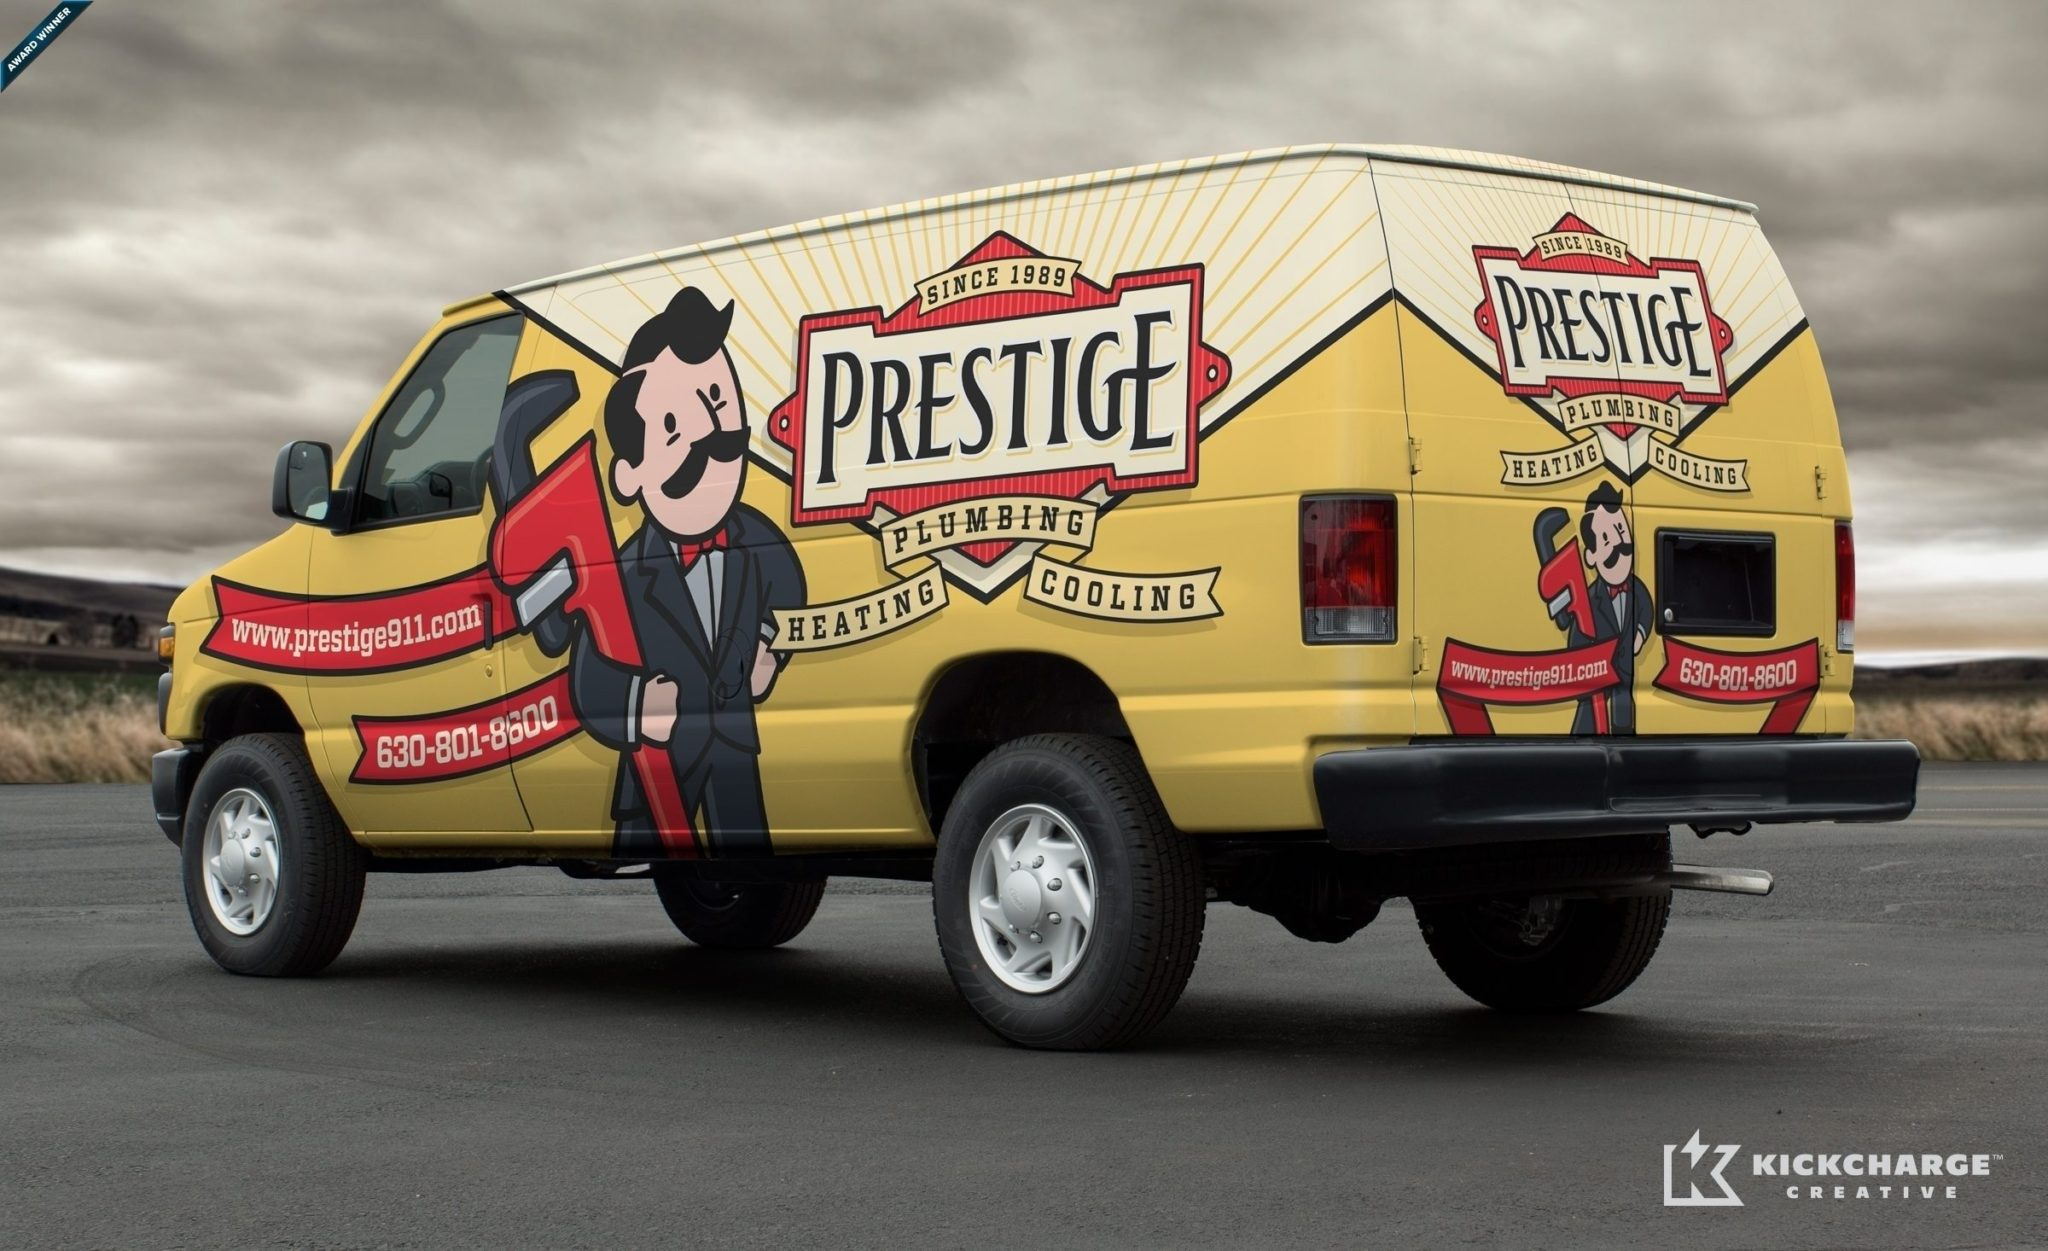 prestige plumbing, heating, & cooling